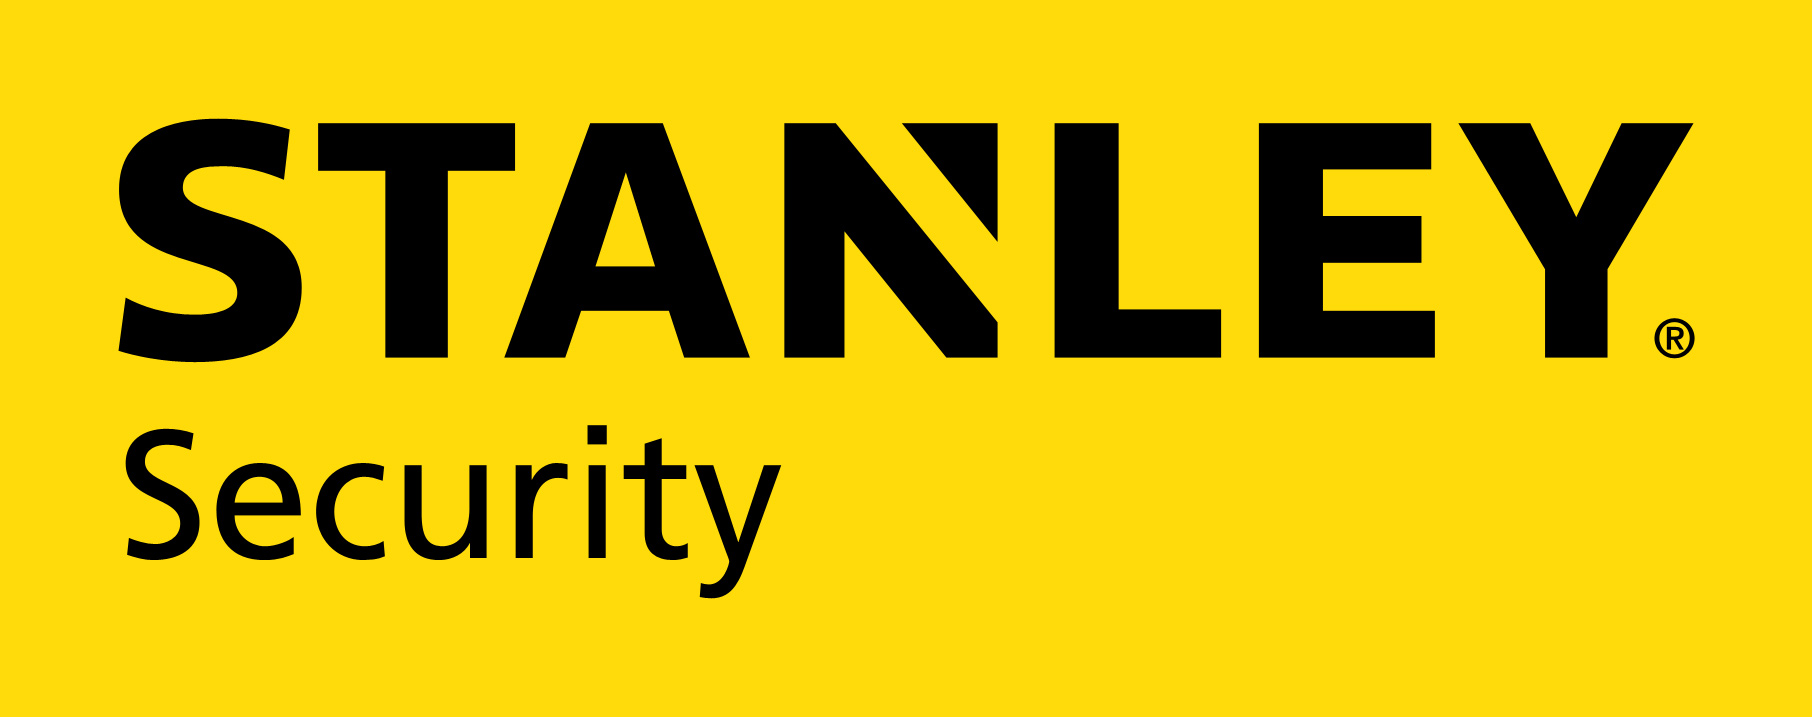 STANLEY SECURITY FRANCE_1231_logo